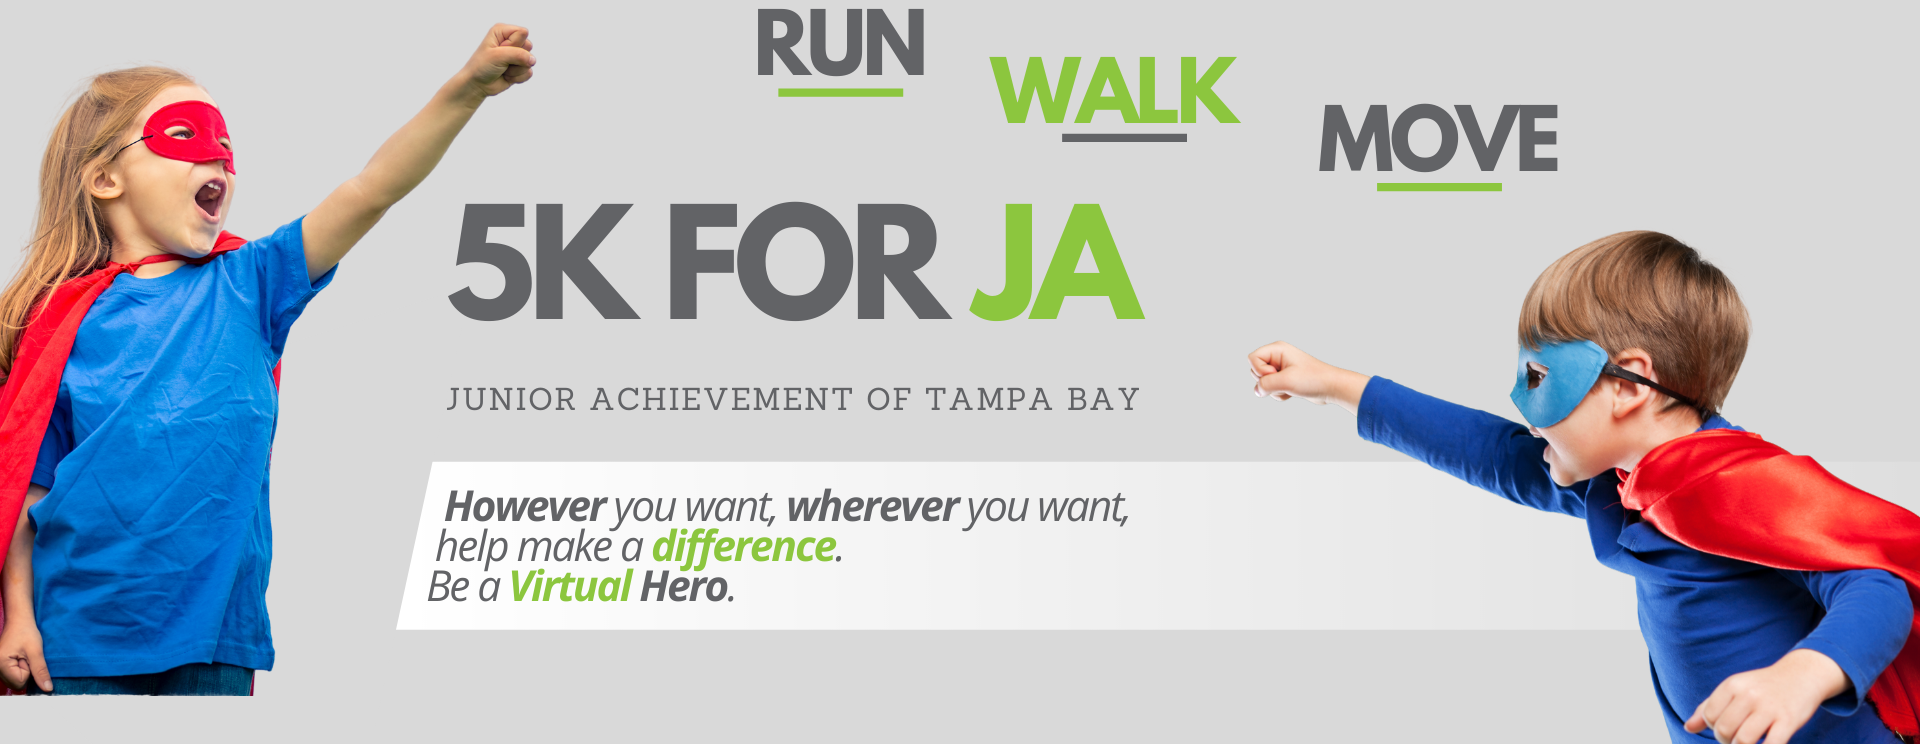 Virtual 5k For JA